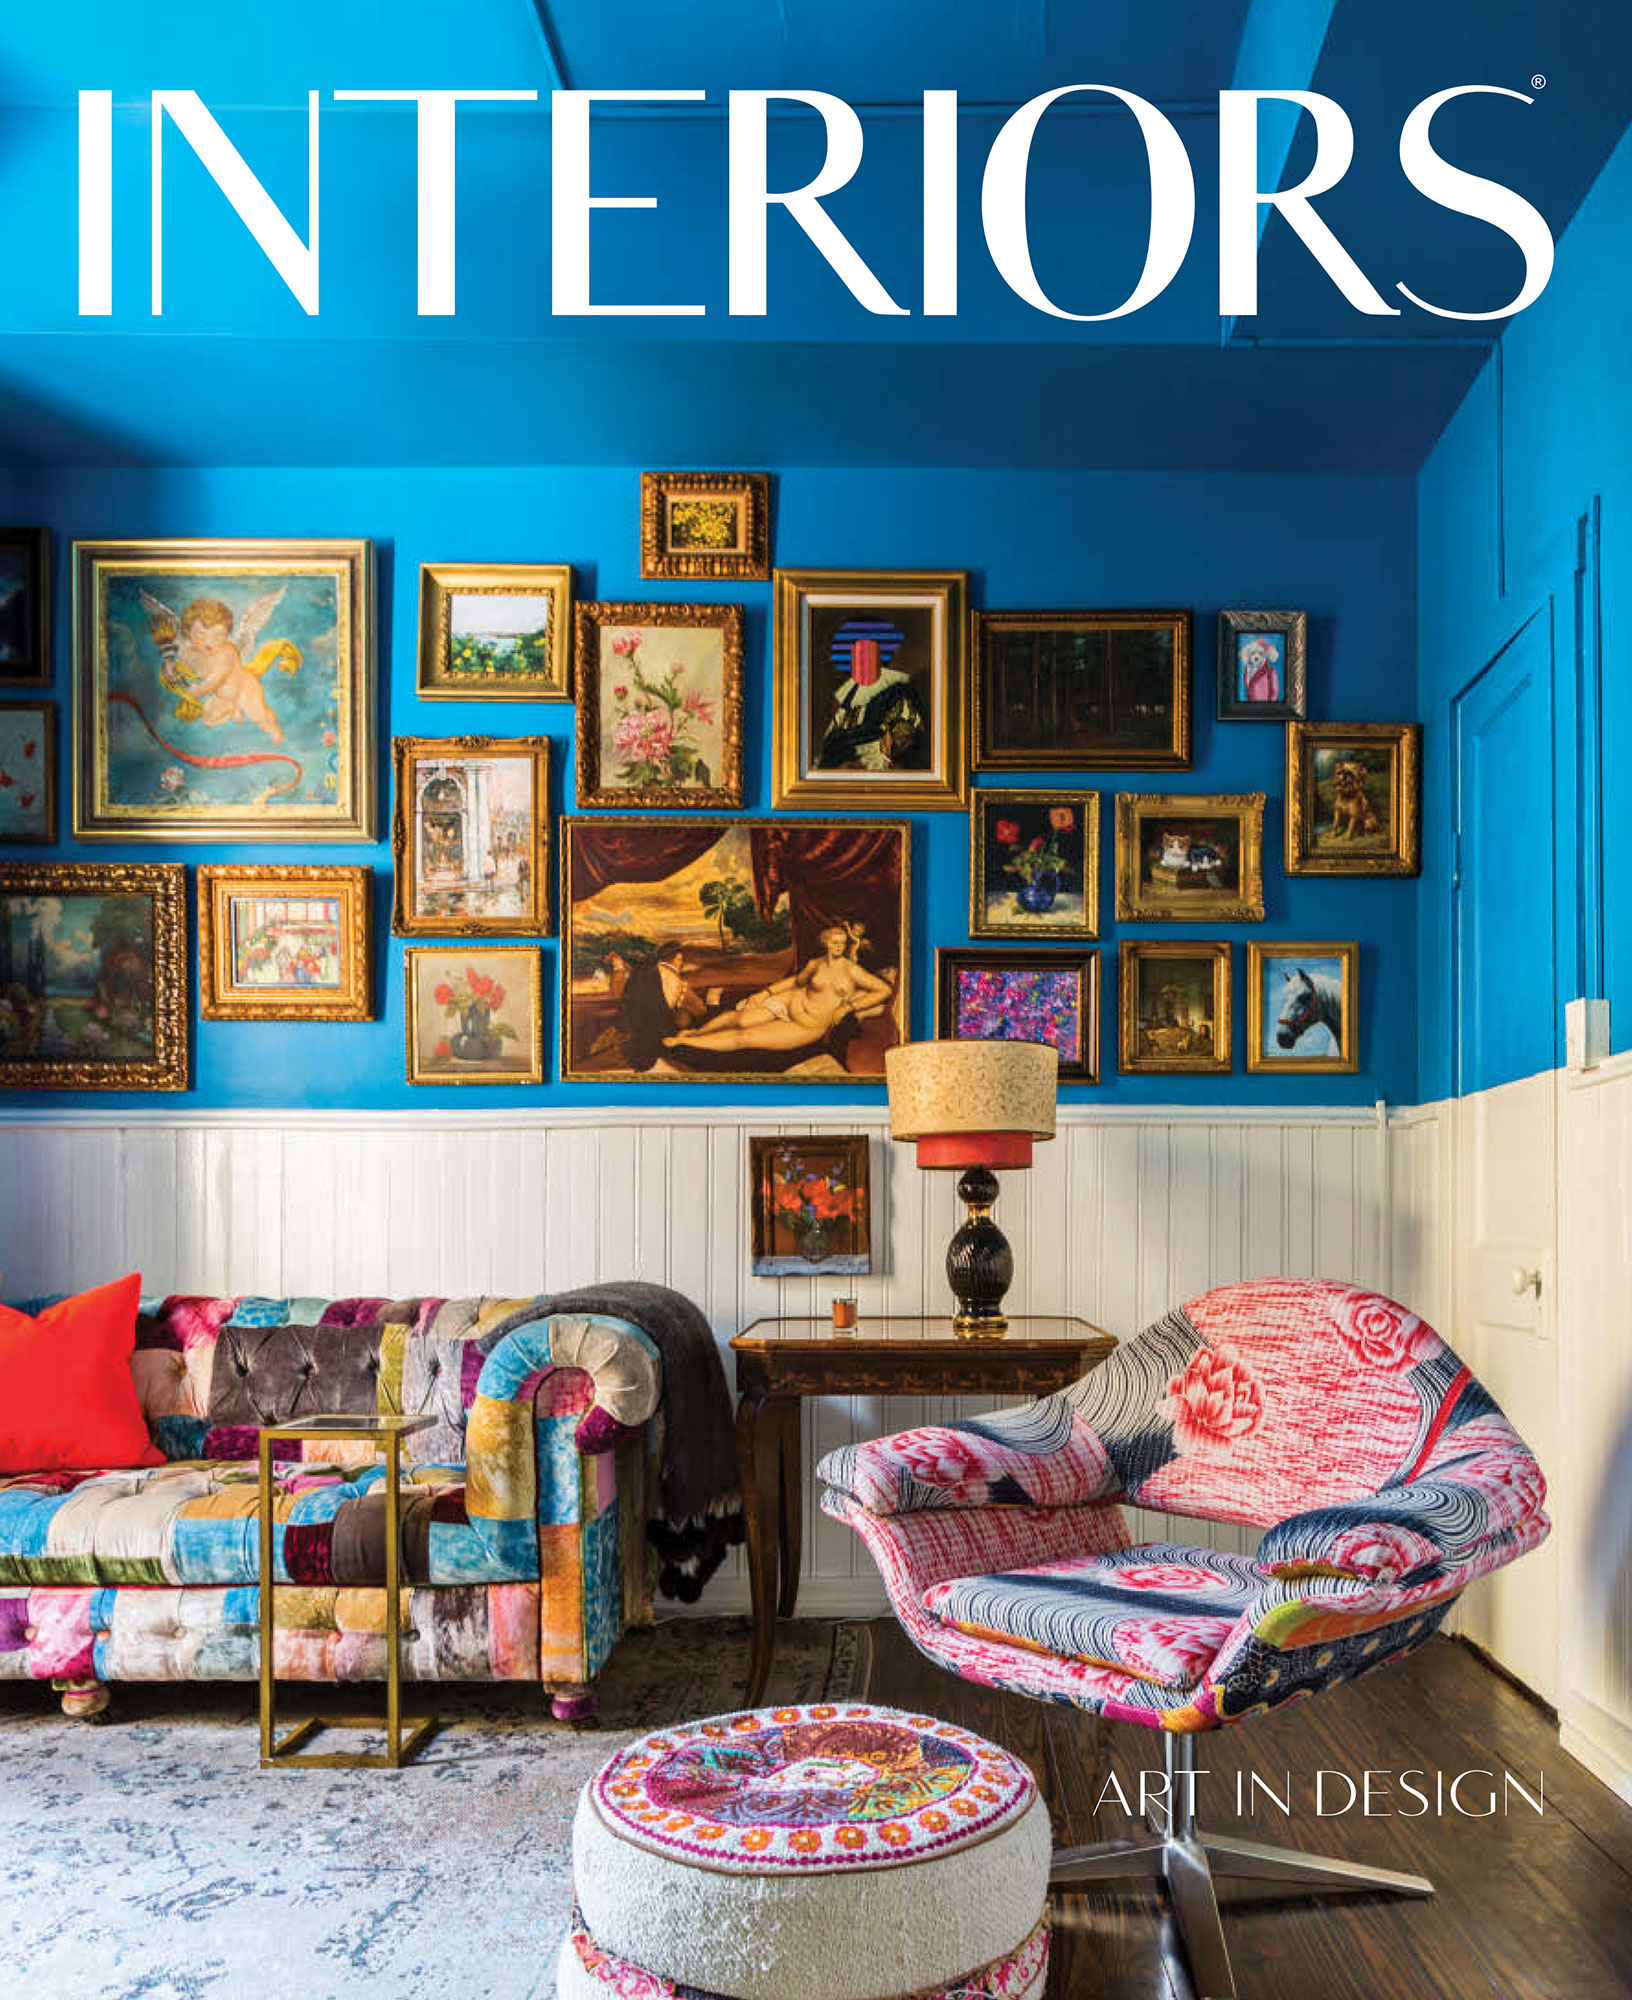 Interiors - Magazine Photography - Julie Soefer Photography